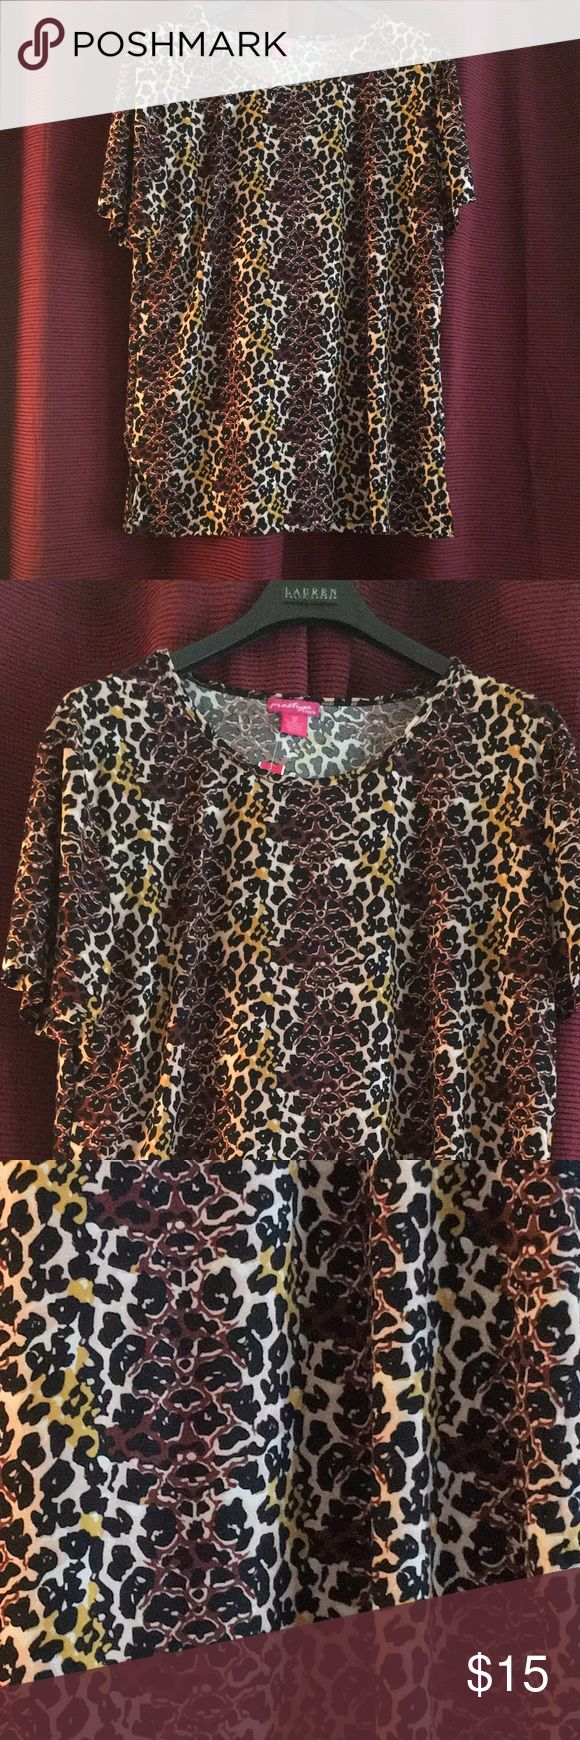 🌹presitage plus style sexy animal print top This is just in brand new animal print top 3/4 sleeves loose fitting light weight good stretch this poly /spandex blend very attractive items for plus size presitageplus  Tops Blouses